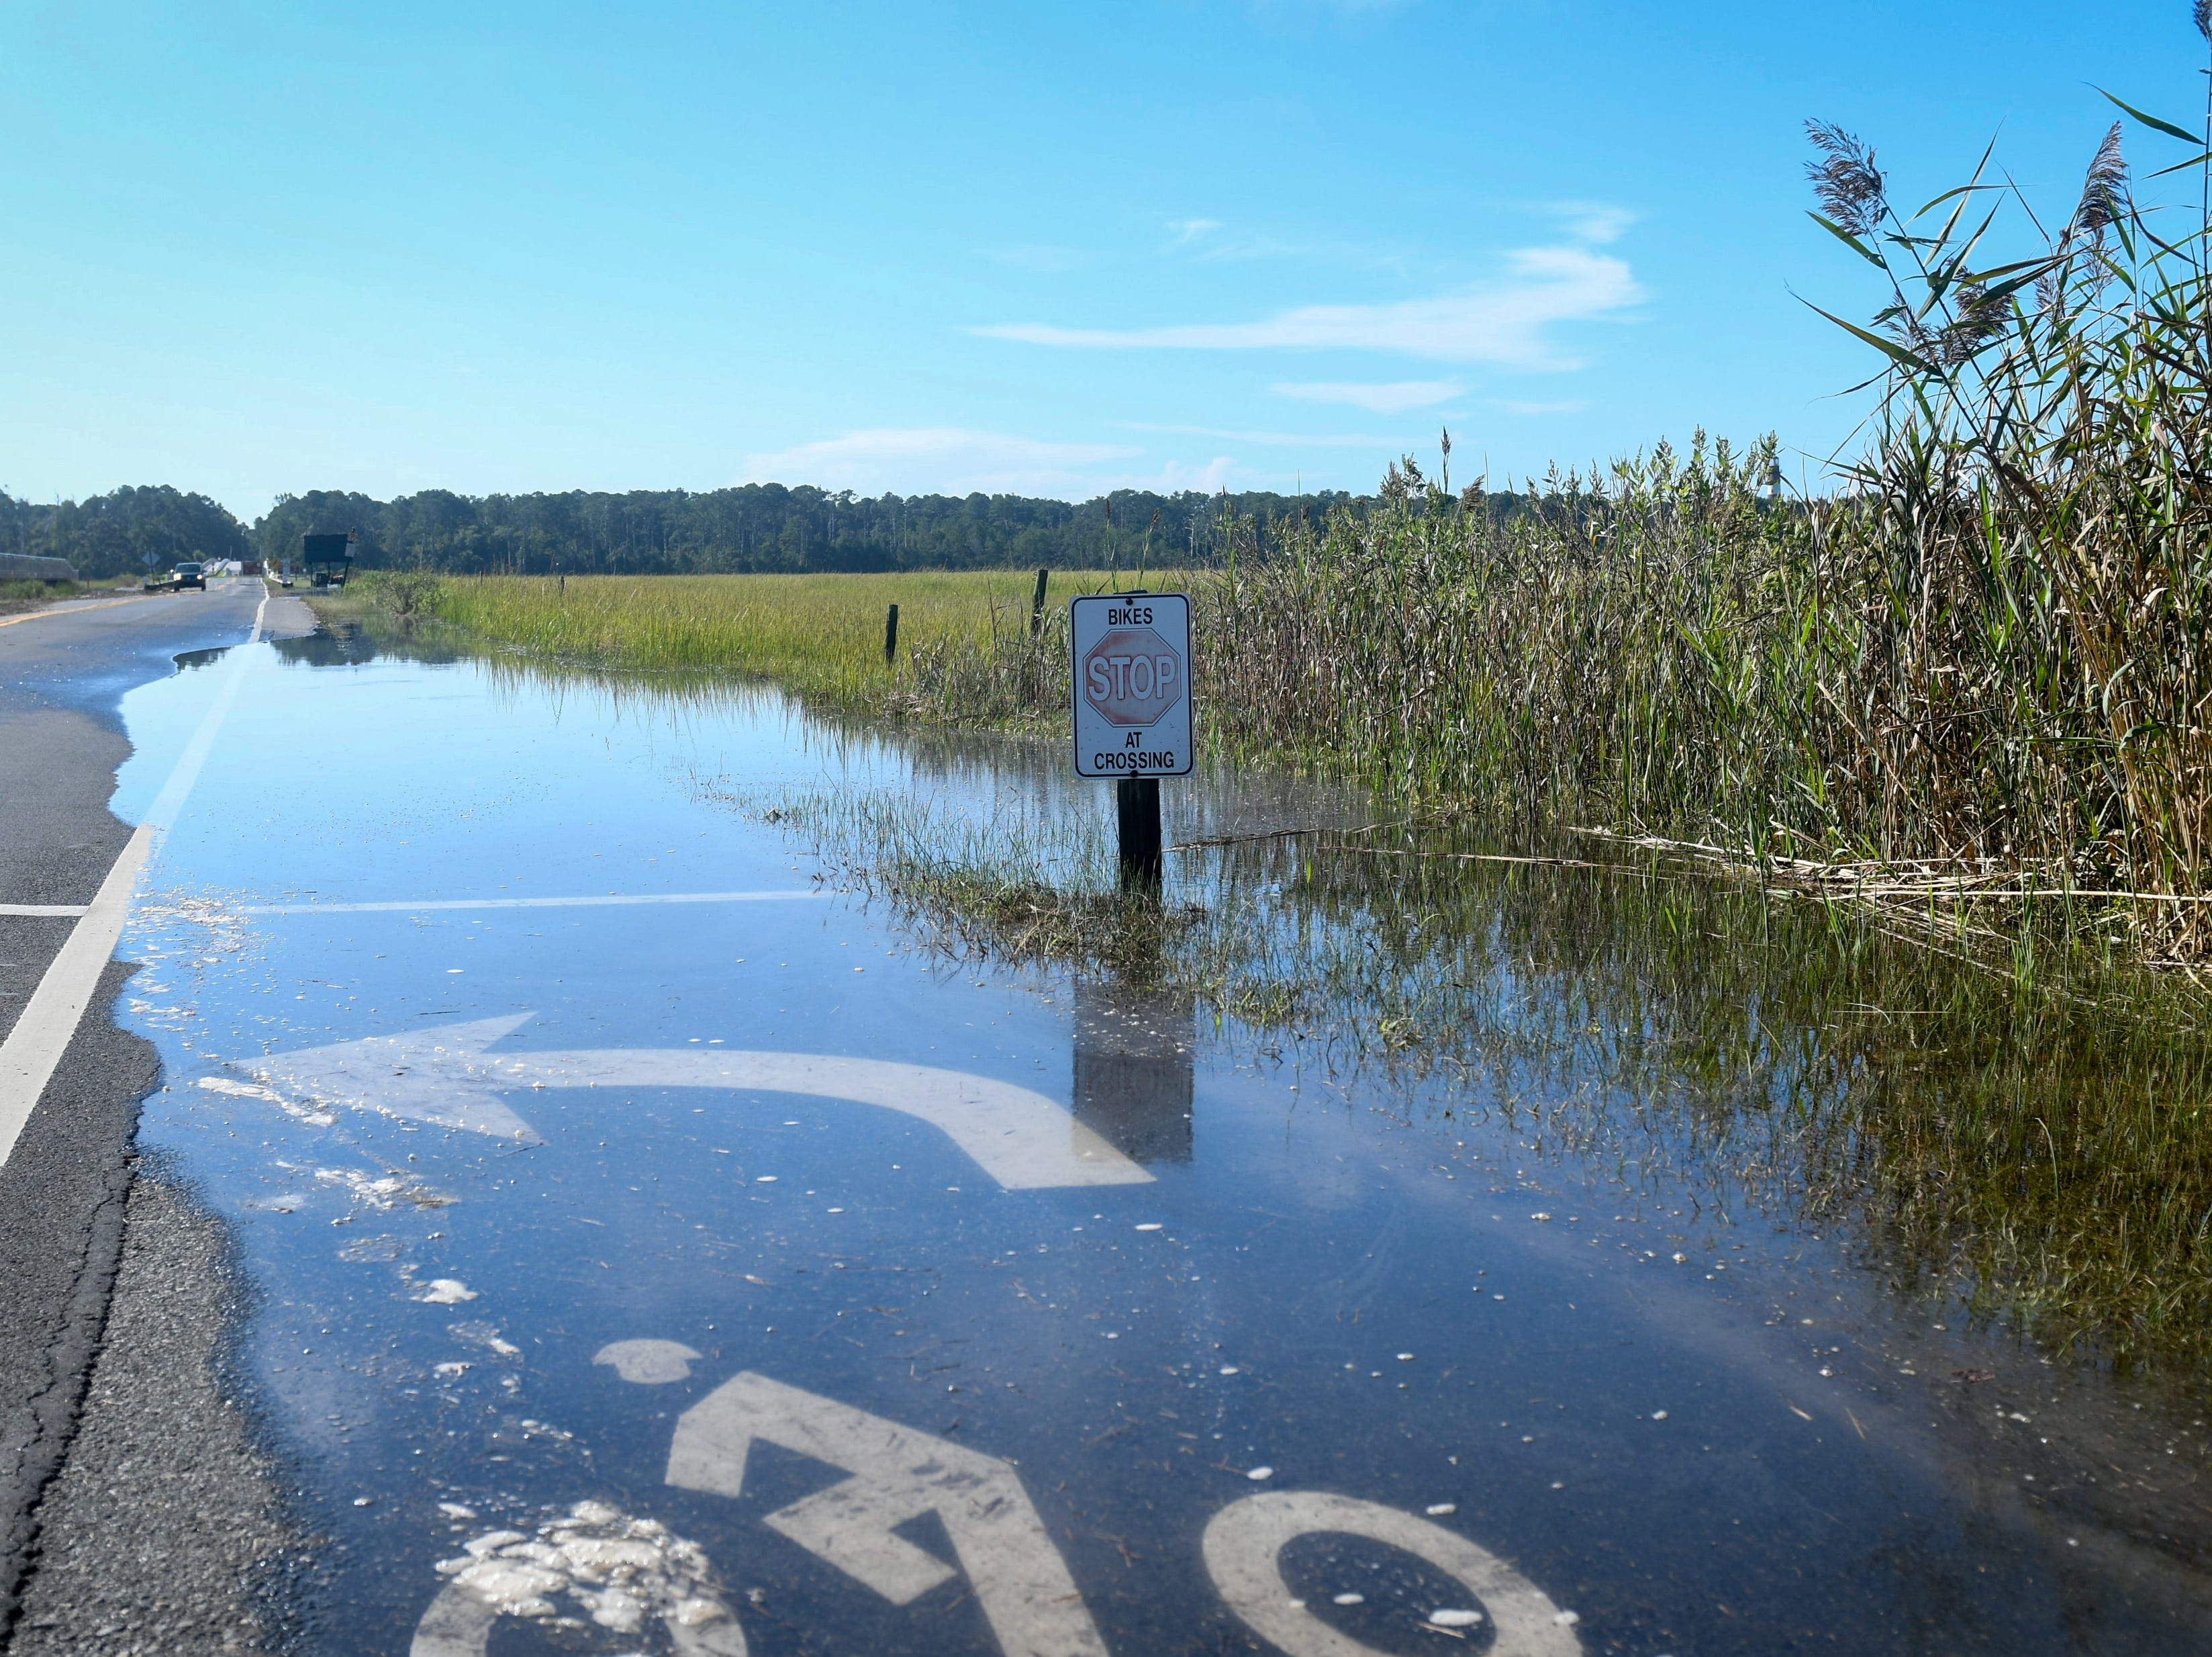 Mild flooding on Chincoteague Island during high tide on Tuesday, Sept. 11. The island is part of the state's zone A evacuation that was issued in advance of Hurricane Florence, but local officials have not asked residents to leave yet.